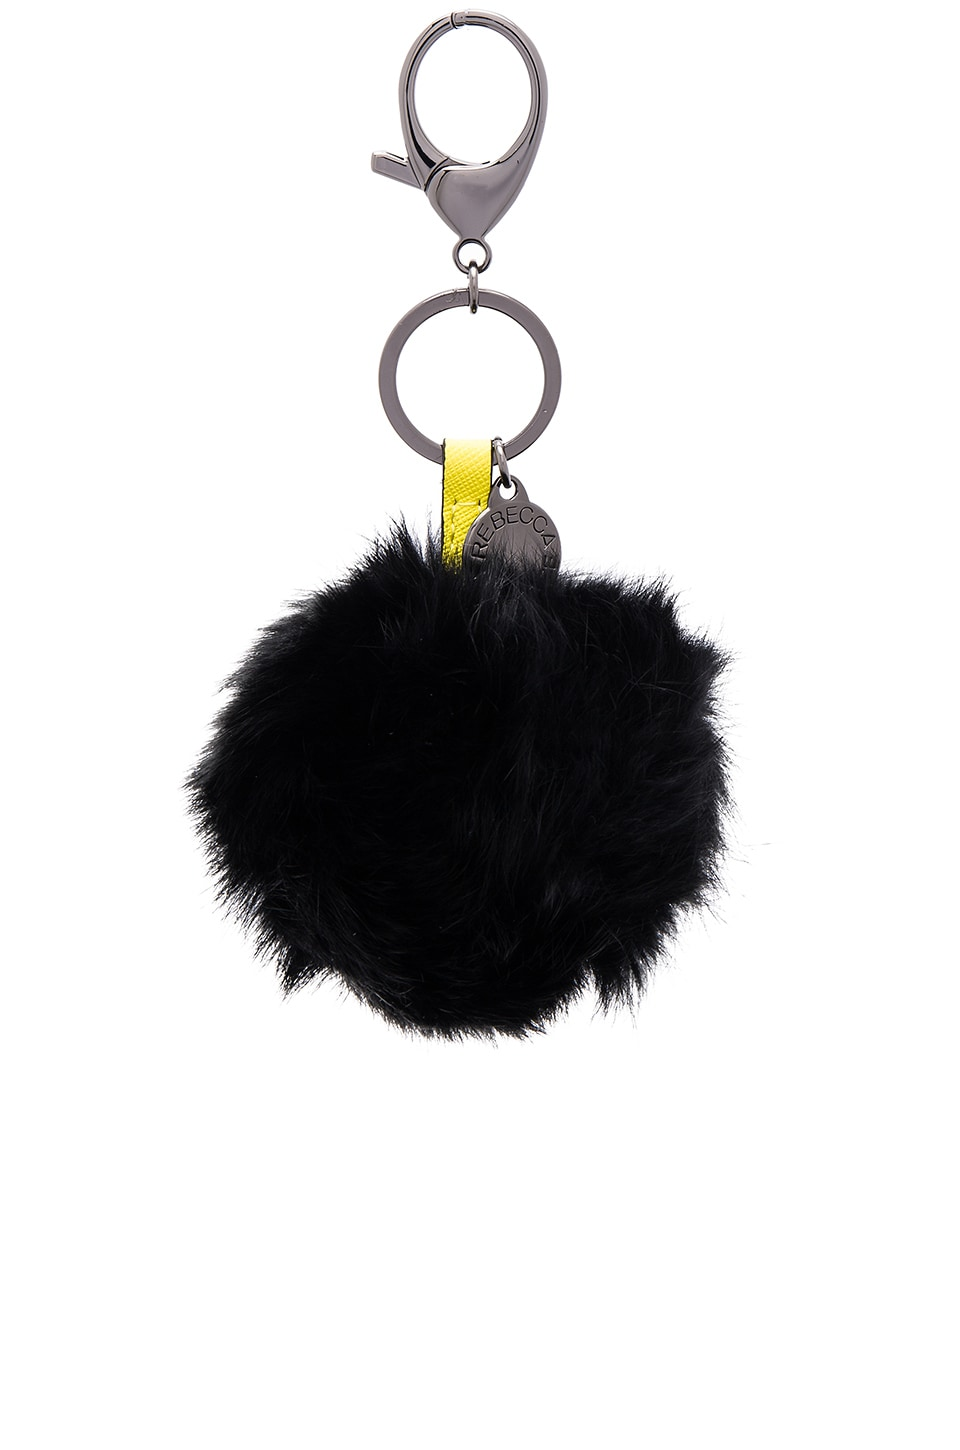 Rebecca Minkoff Rabbit Fur Pom Pom Key Chain in Black